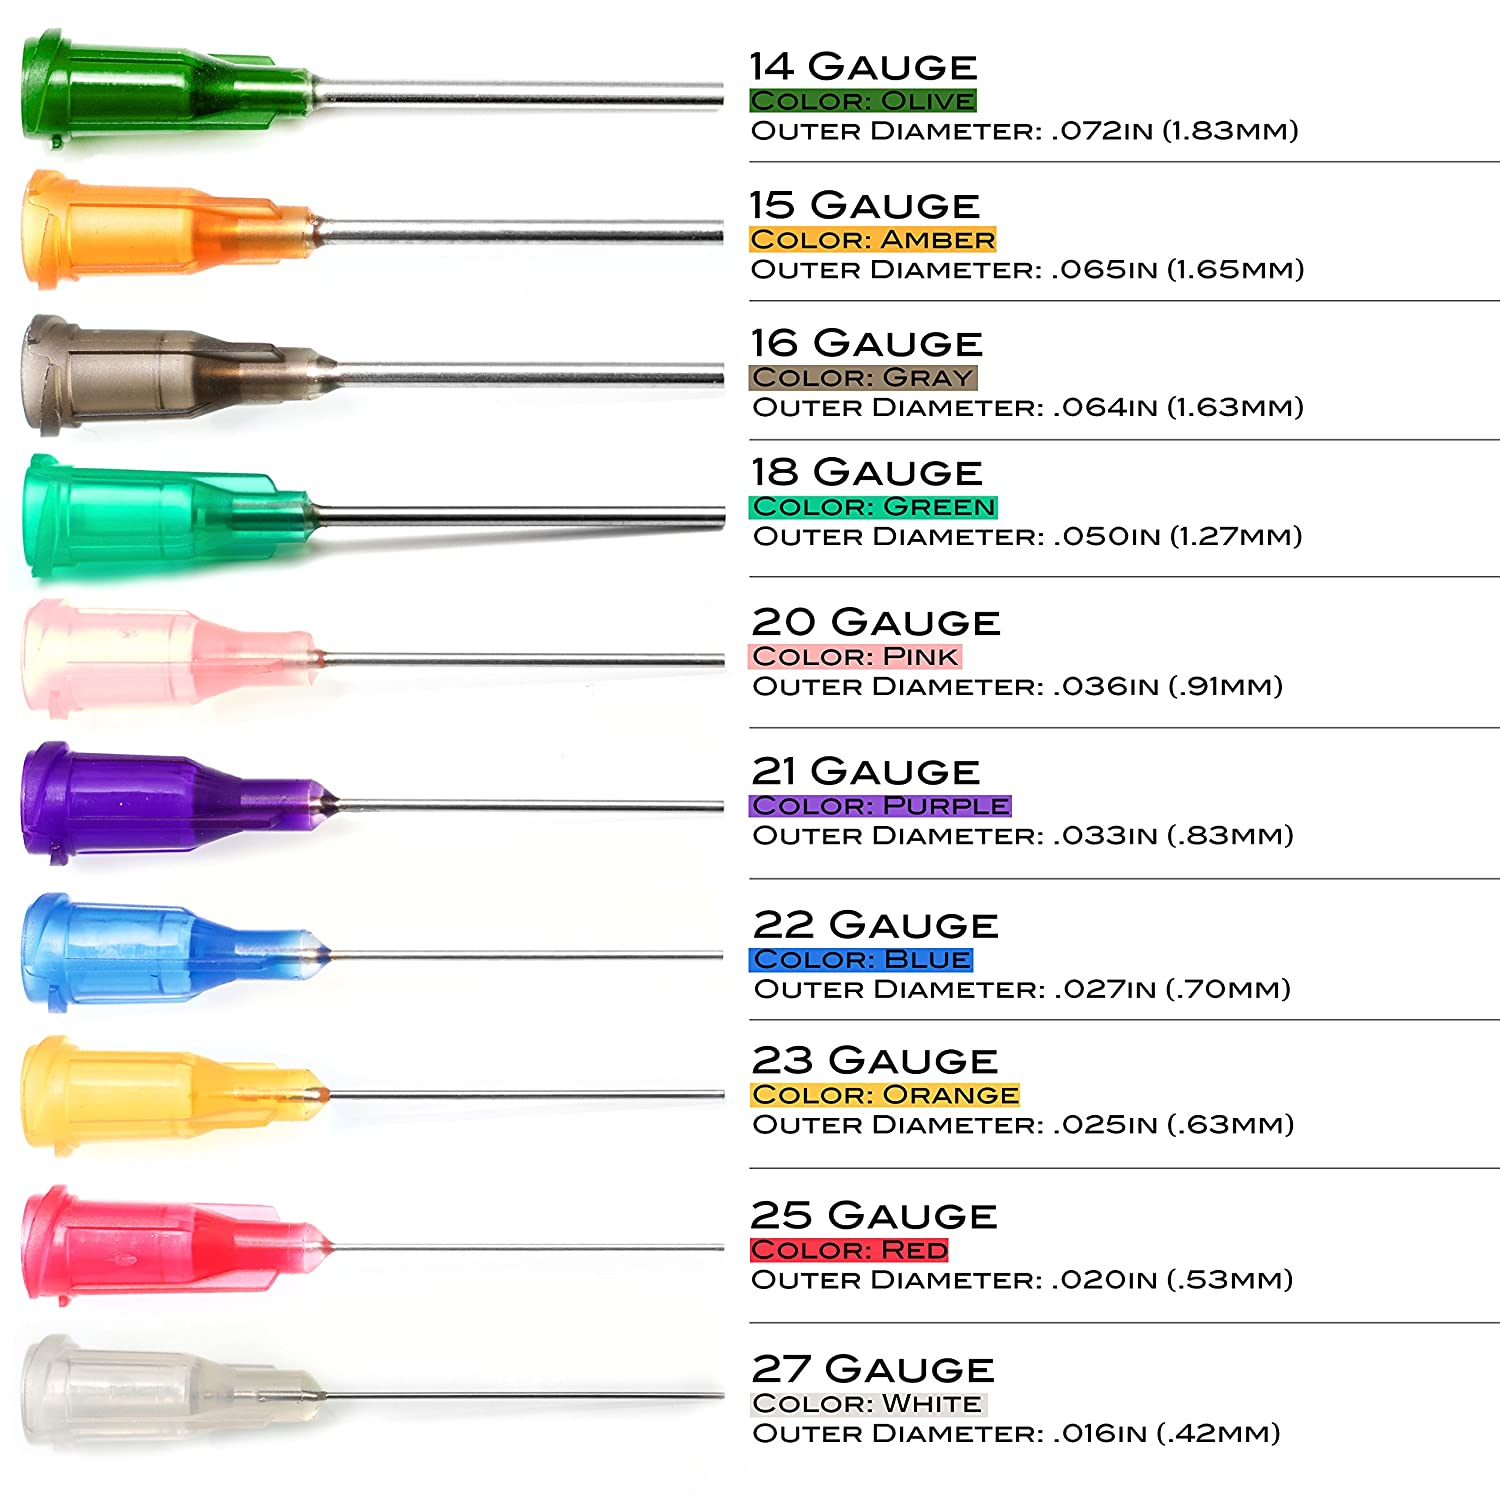 Phlebotomy tubes tourniquet needle hub order of draw medical phlebotomy tubes tourniquet needle hub order of draw medical sciences pinterest phlebotomy medical and medical assistant nvjuhfo Image collections